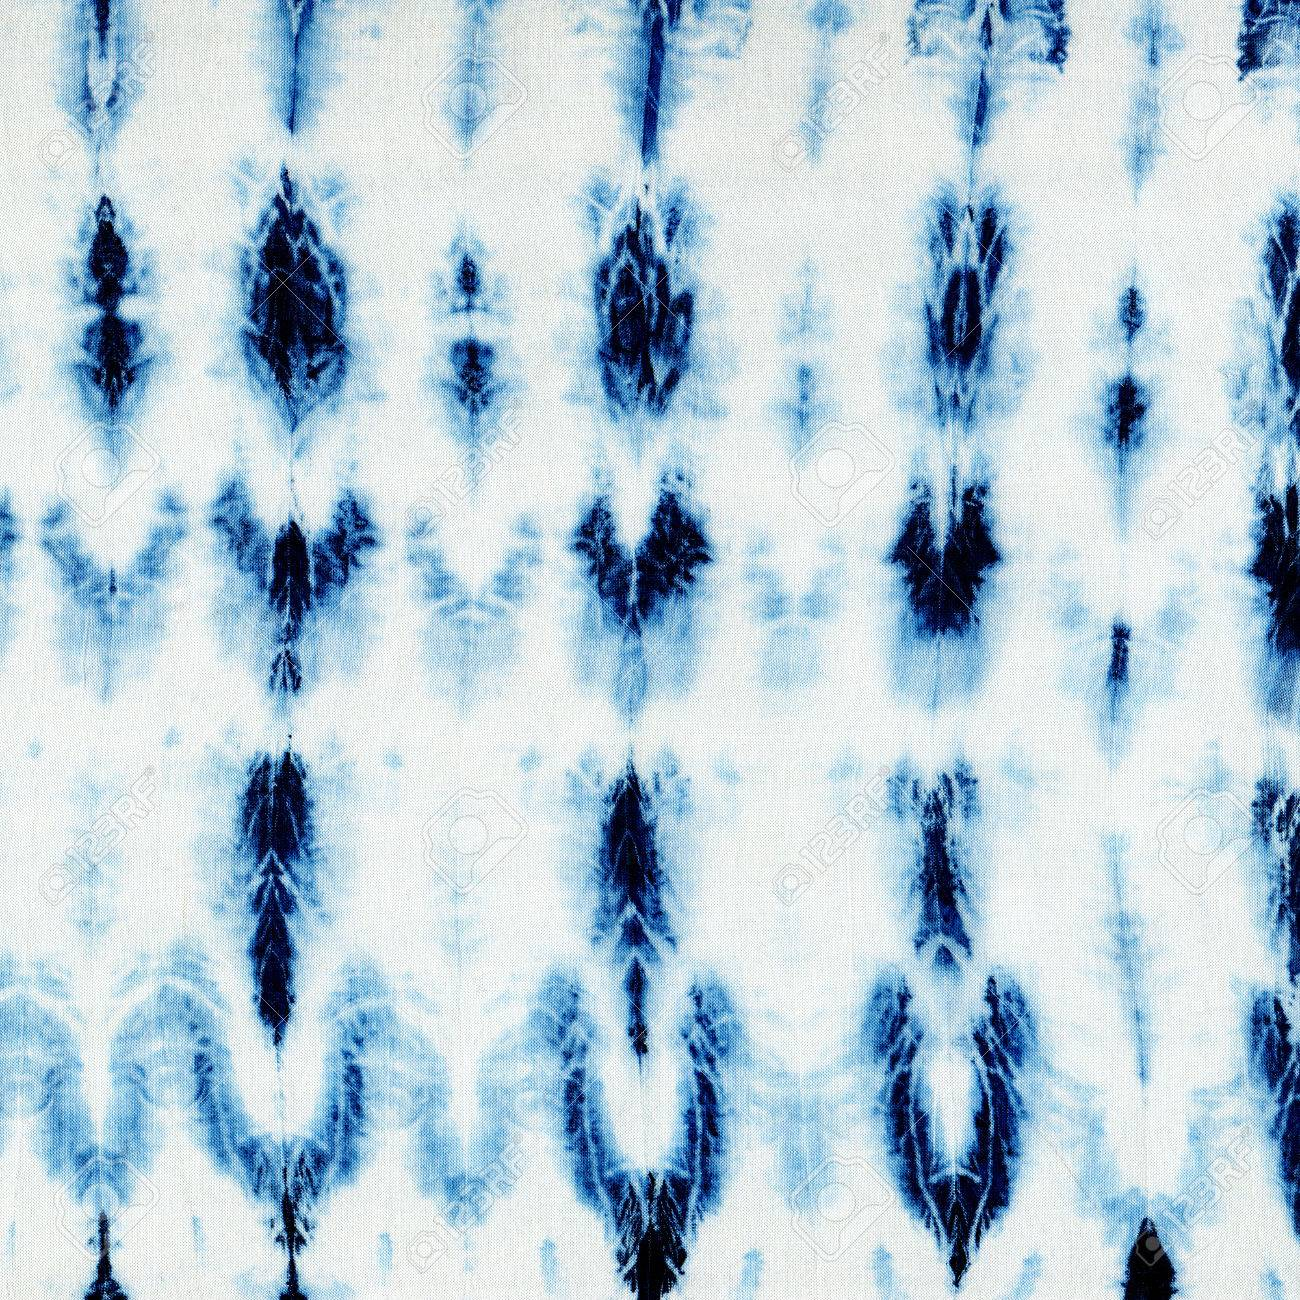 Tie-dye pattern of indigo color on white silk  Hand painting